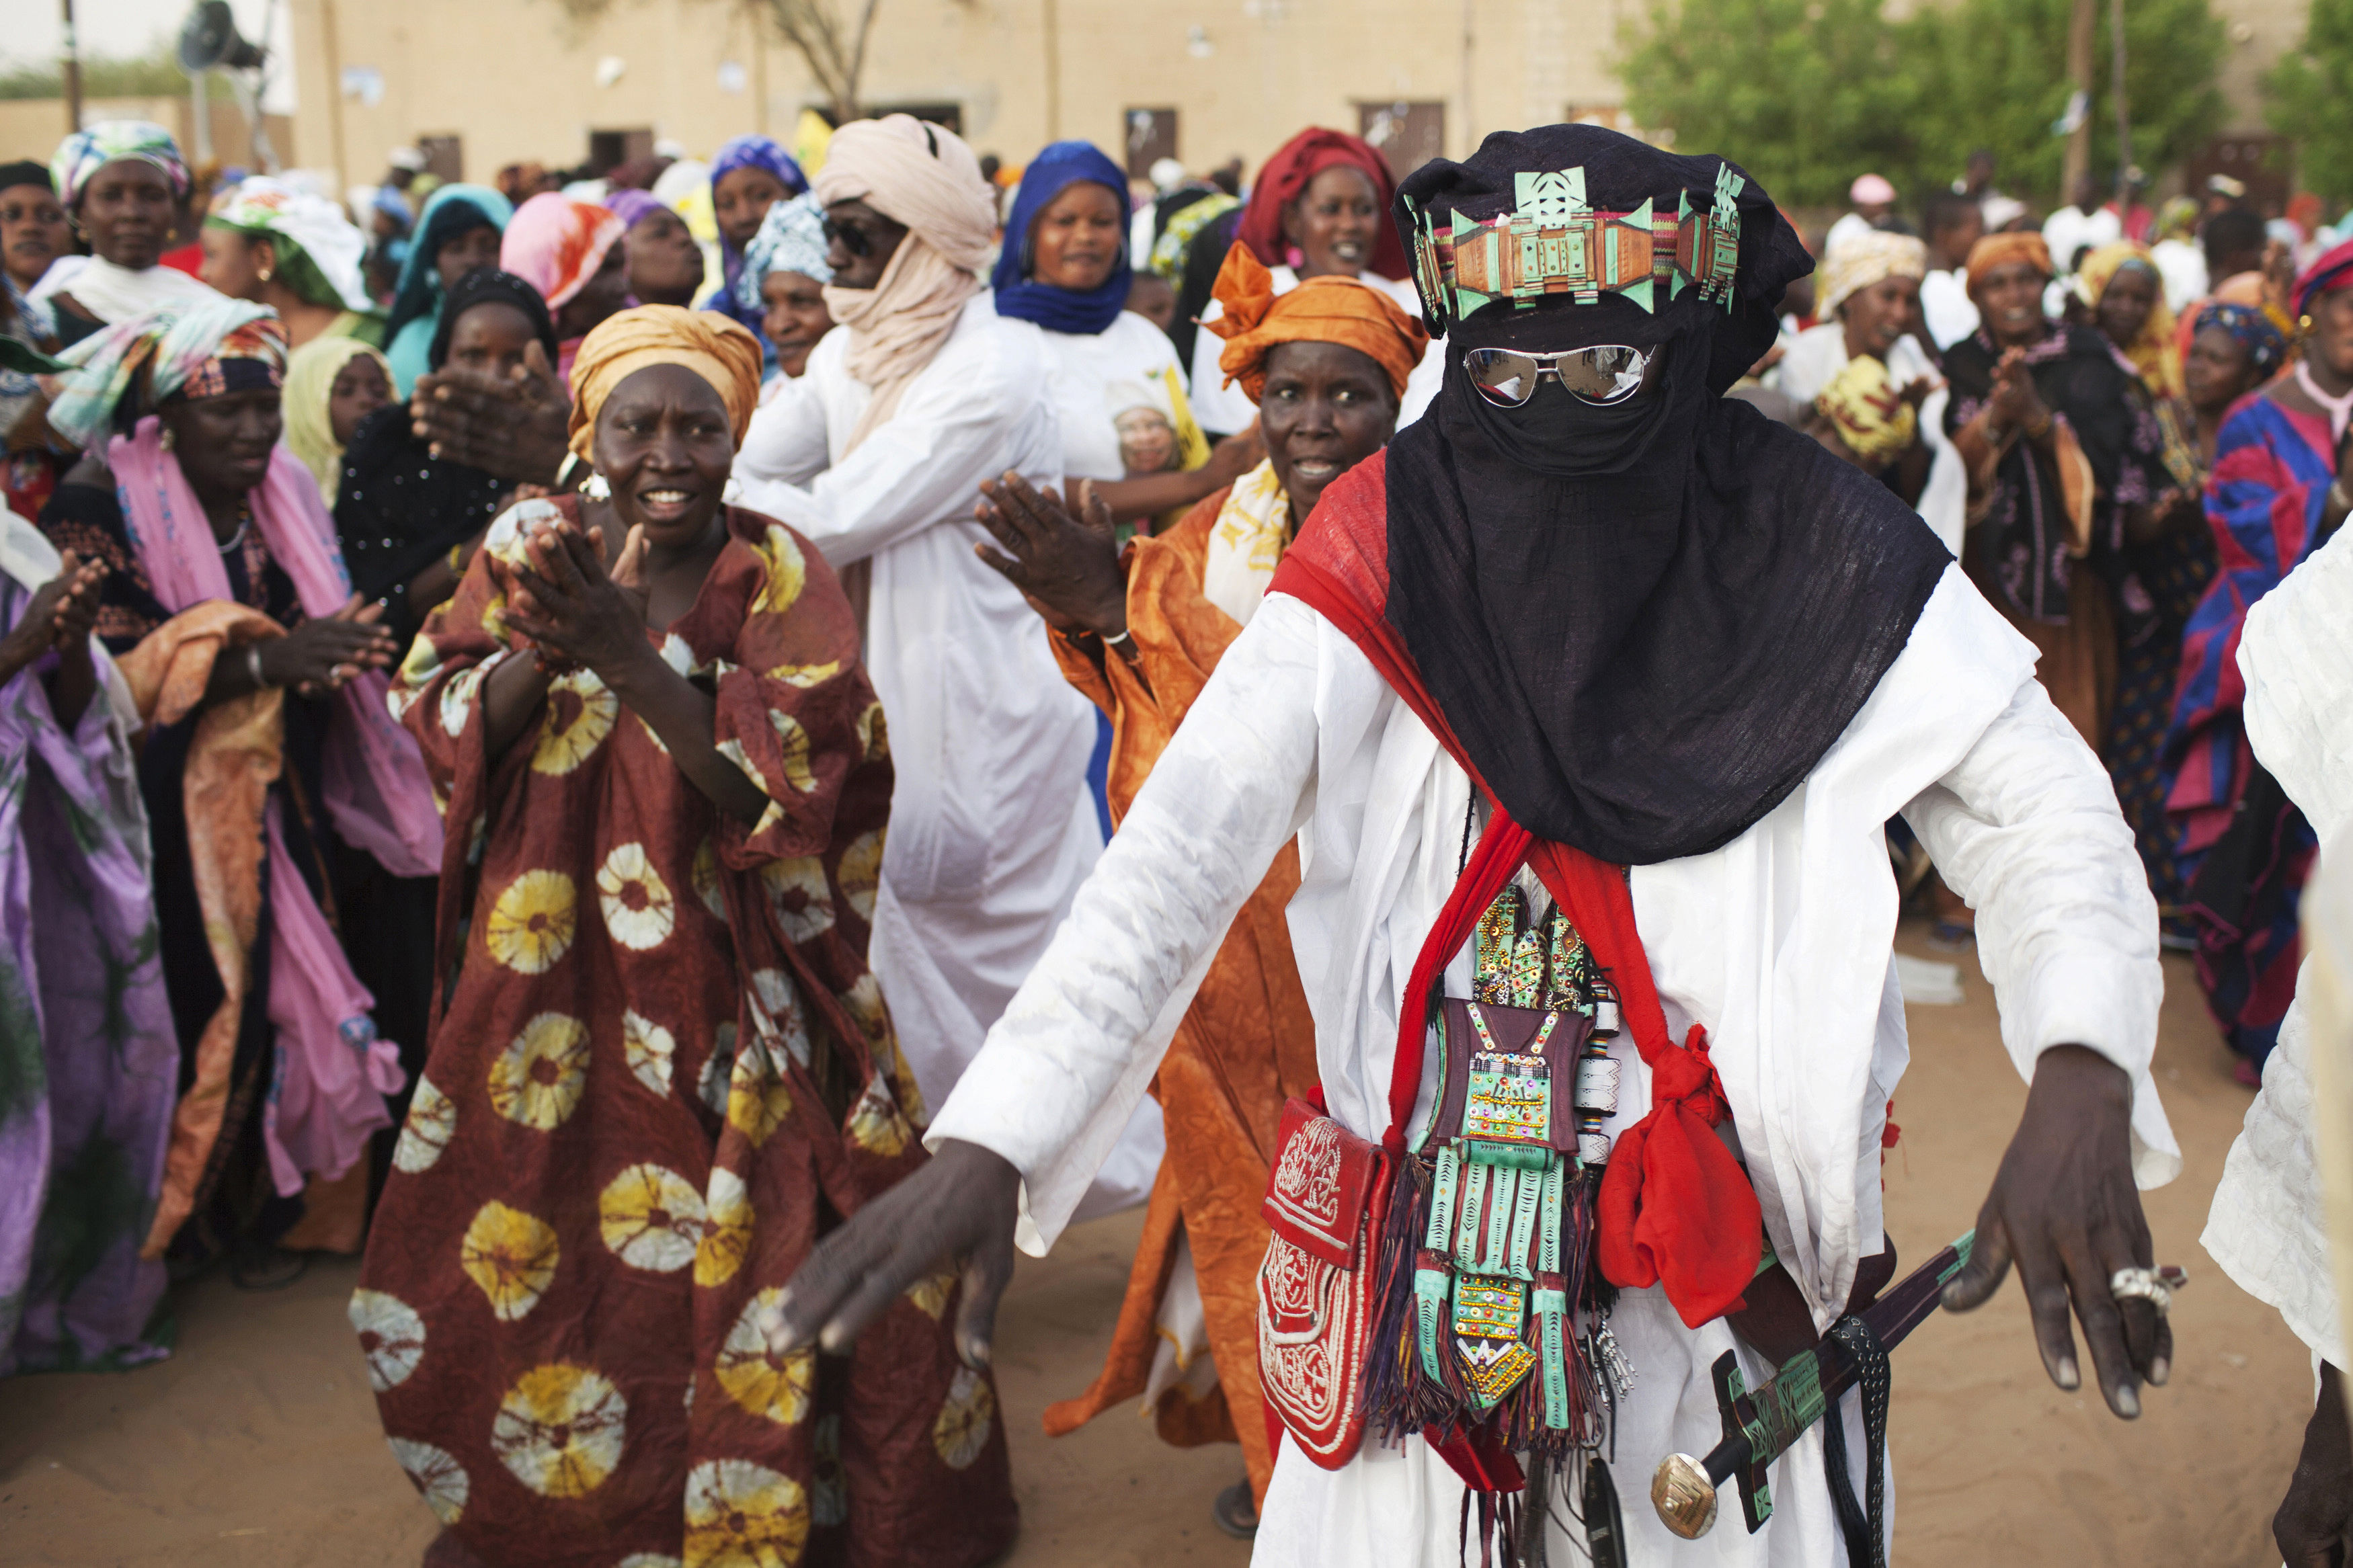 A Tuareg man dances at a campaign rally for presidential candidate Ibrahim Boubacar Keita in Timbuktu, Mali, July 24, 2013.